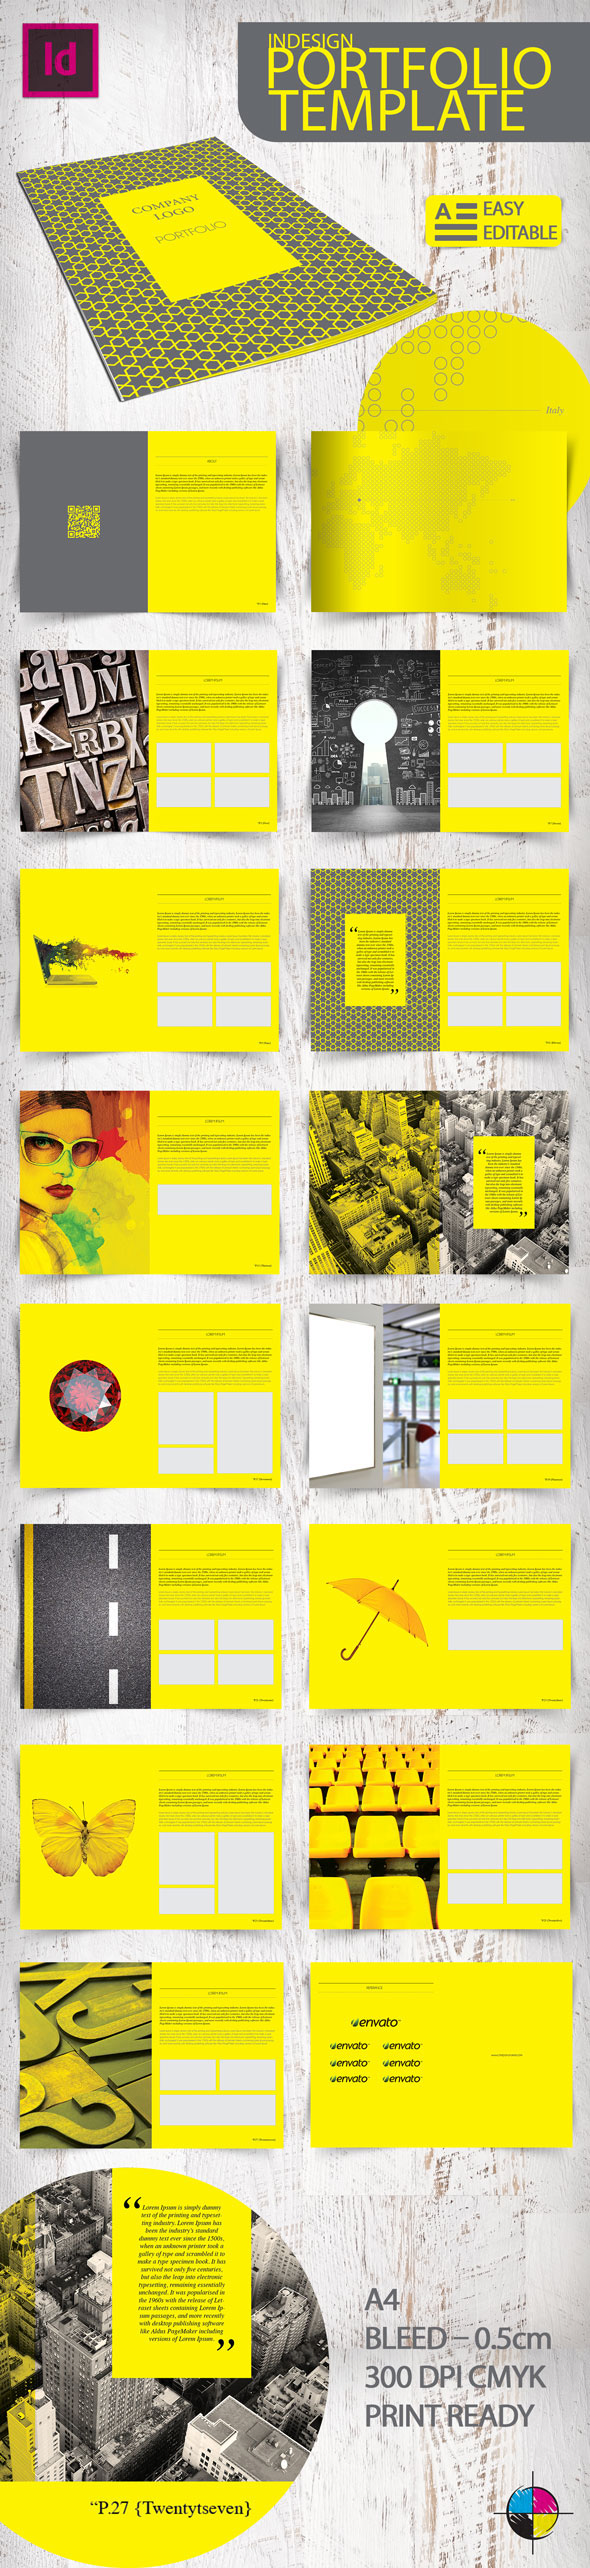 Indesign portfolio template on behance for Free indesign portfolio templates